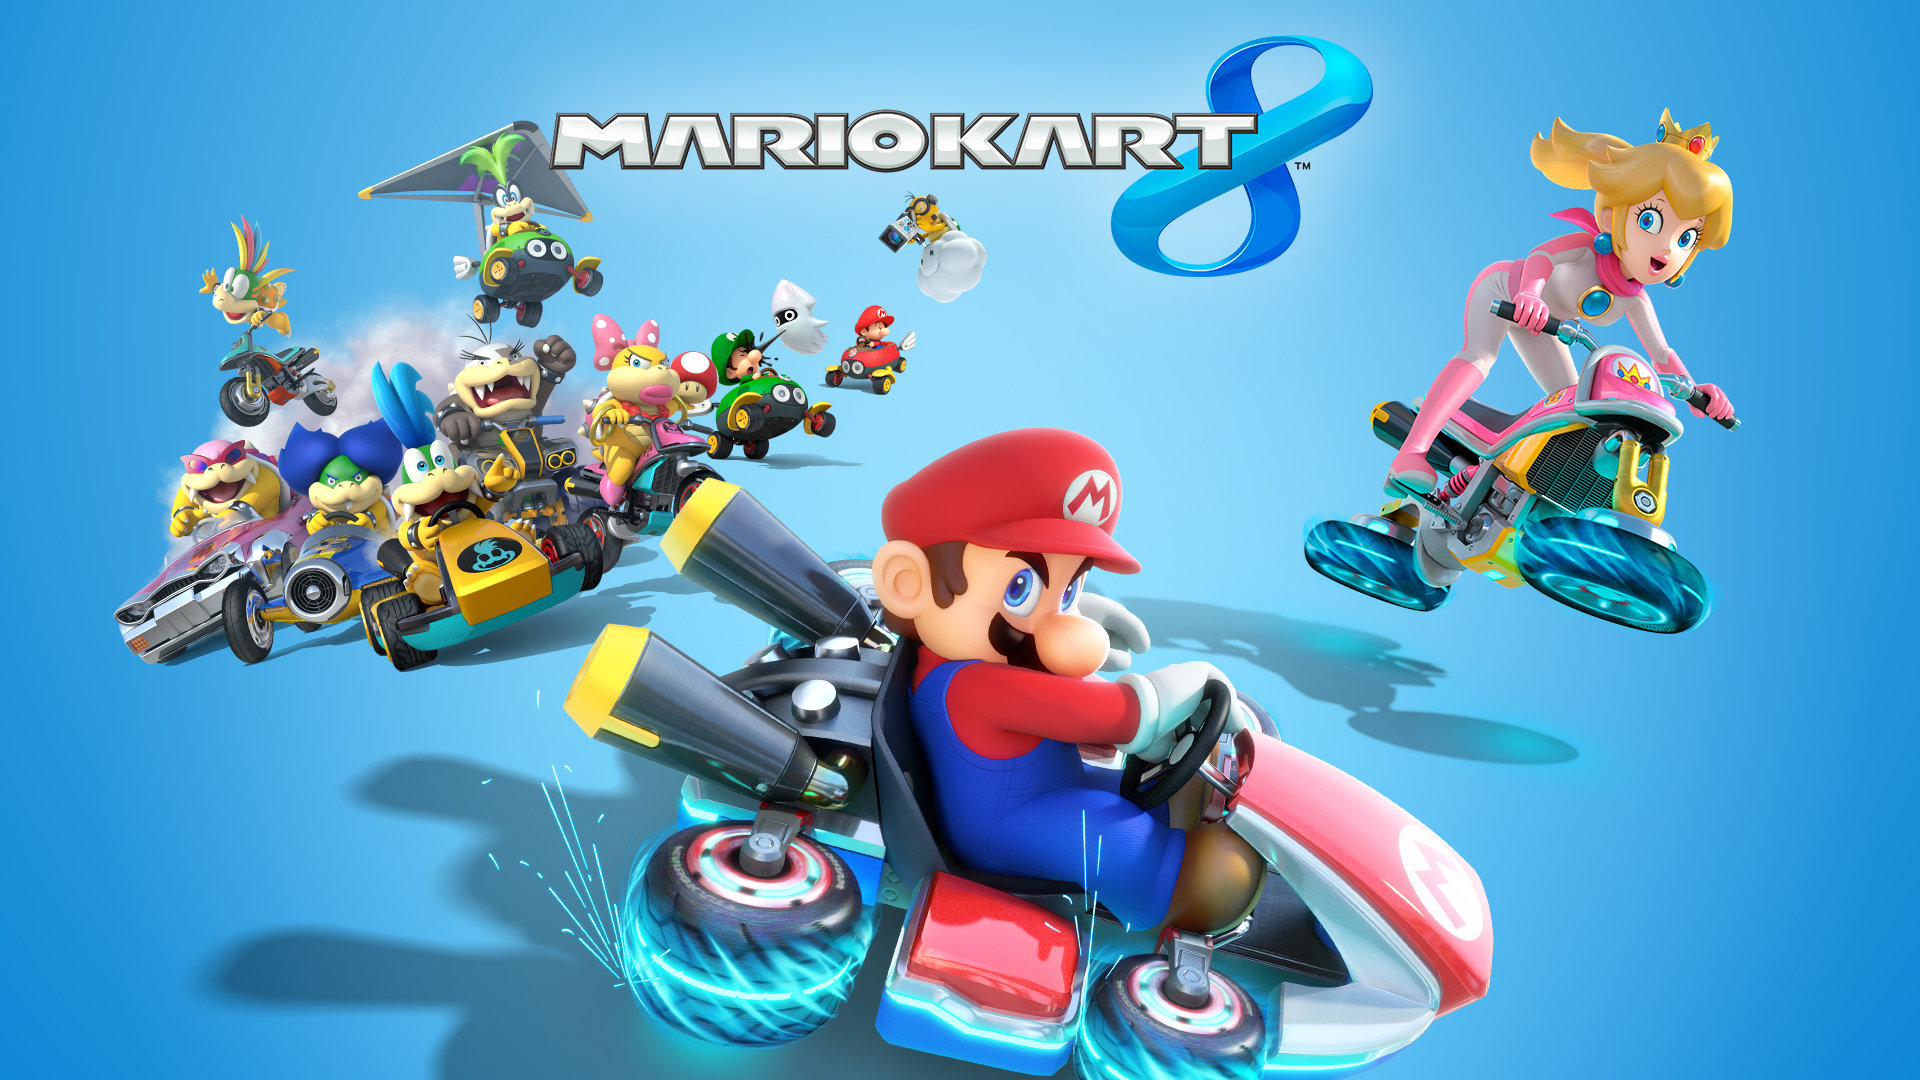 Mario Kart 8 Wallpapers 1920x1080 Full Hd 1080p Desktop Backgrounds